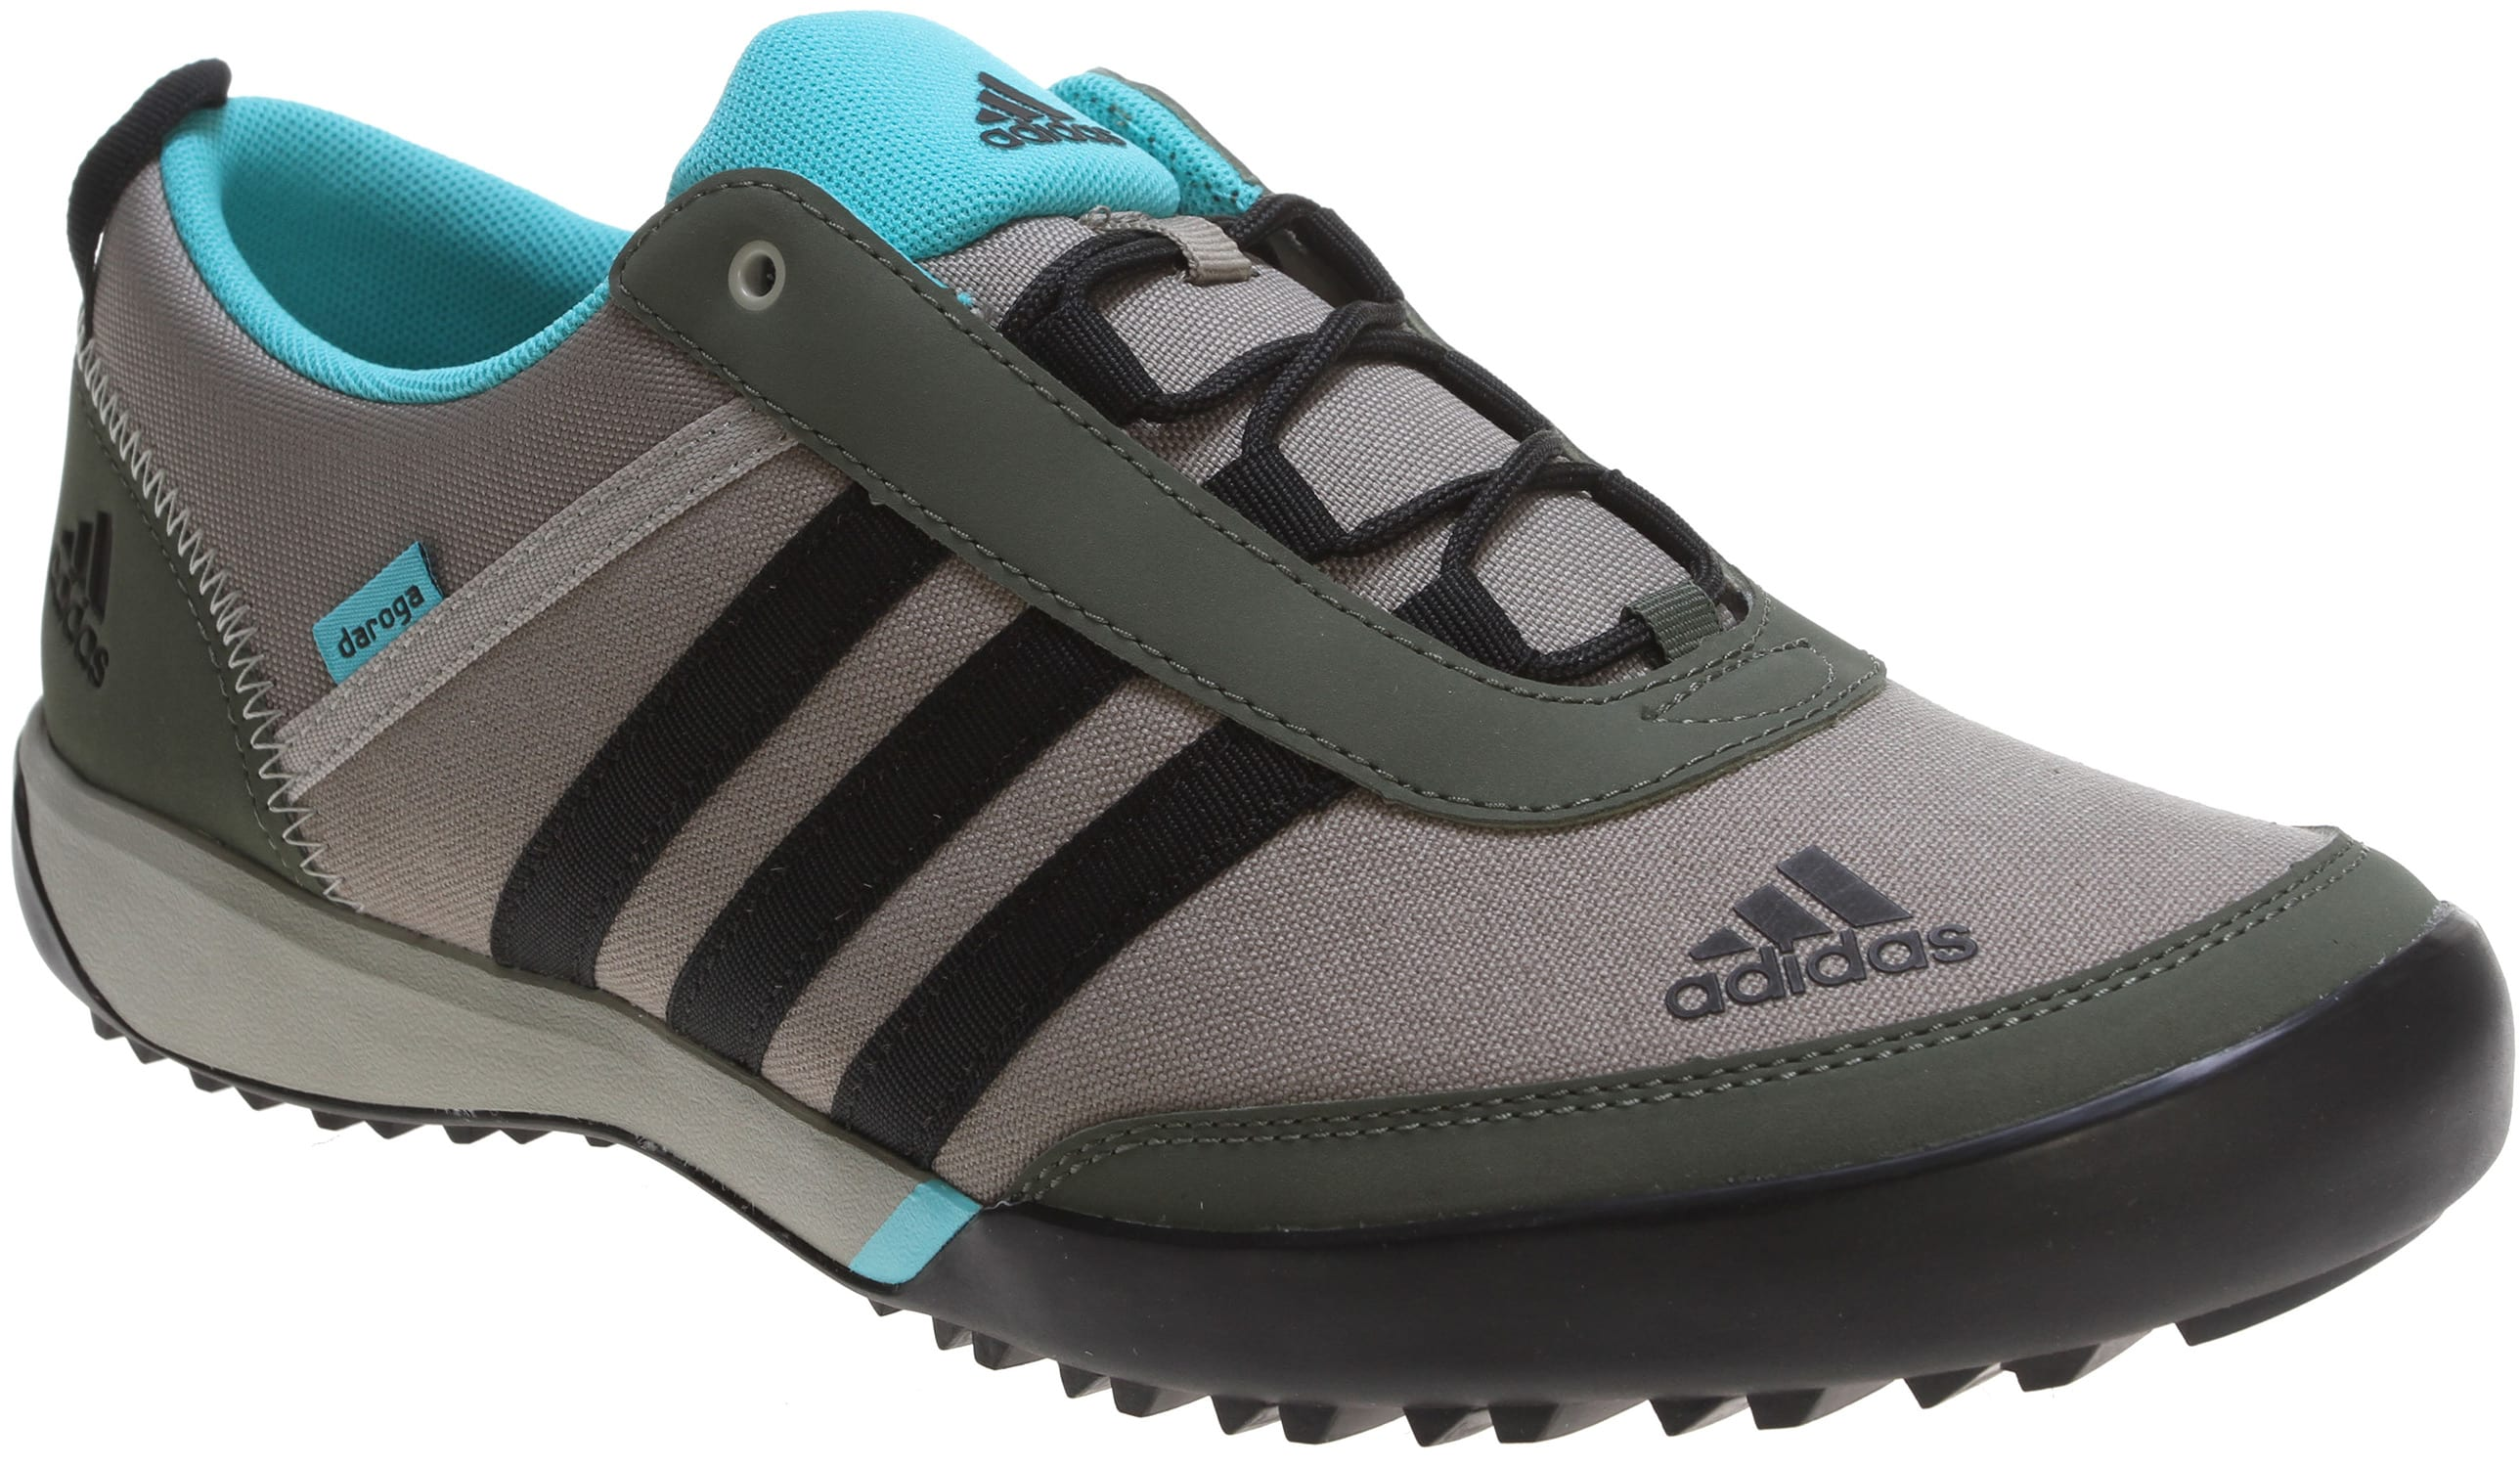 Brands Of Hiking Shoe